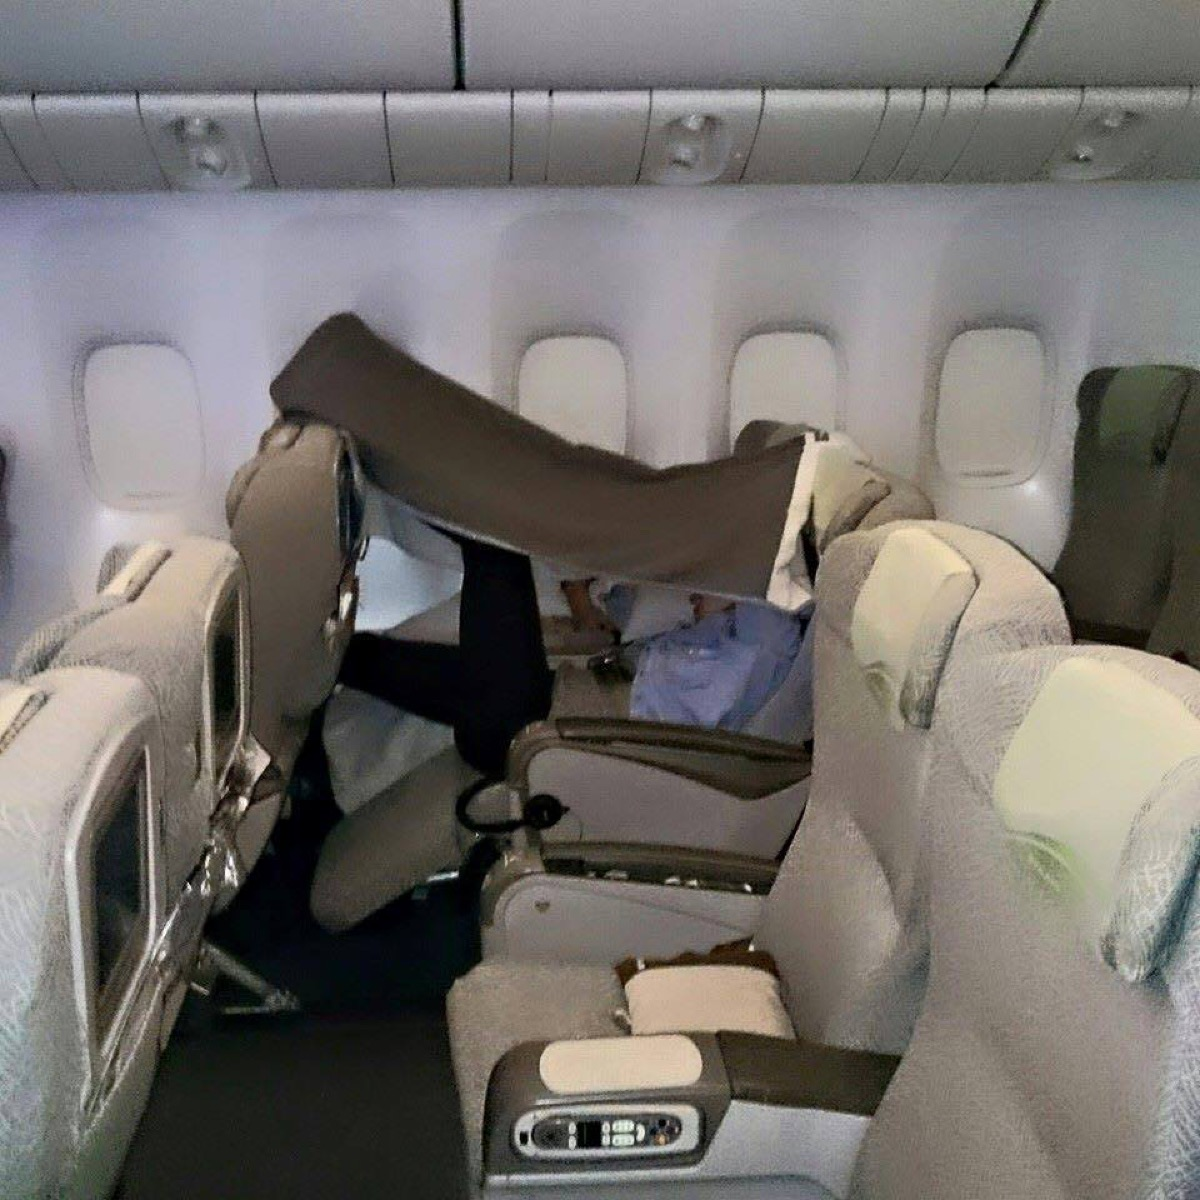 Airline passenger with blanket over head photos of terrible airplane passengers